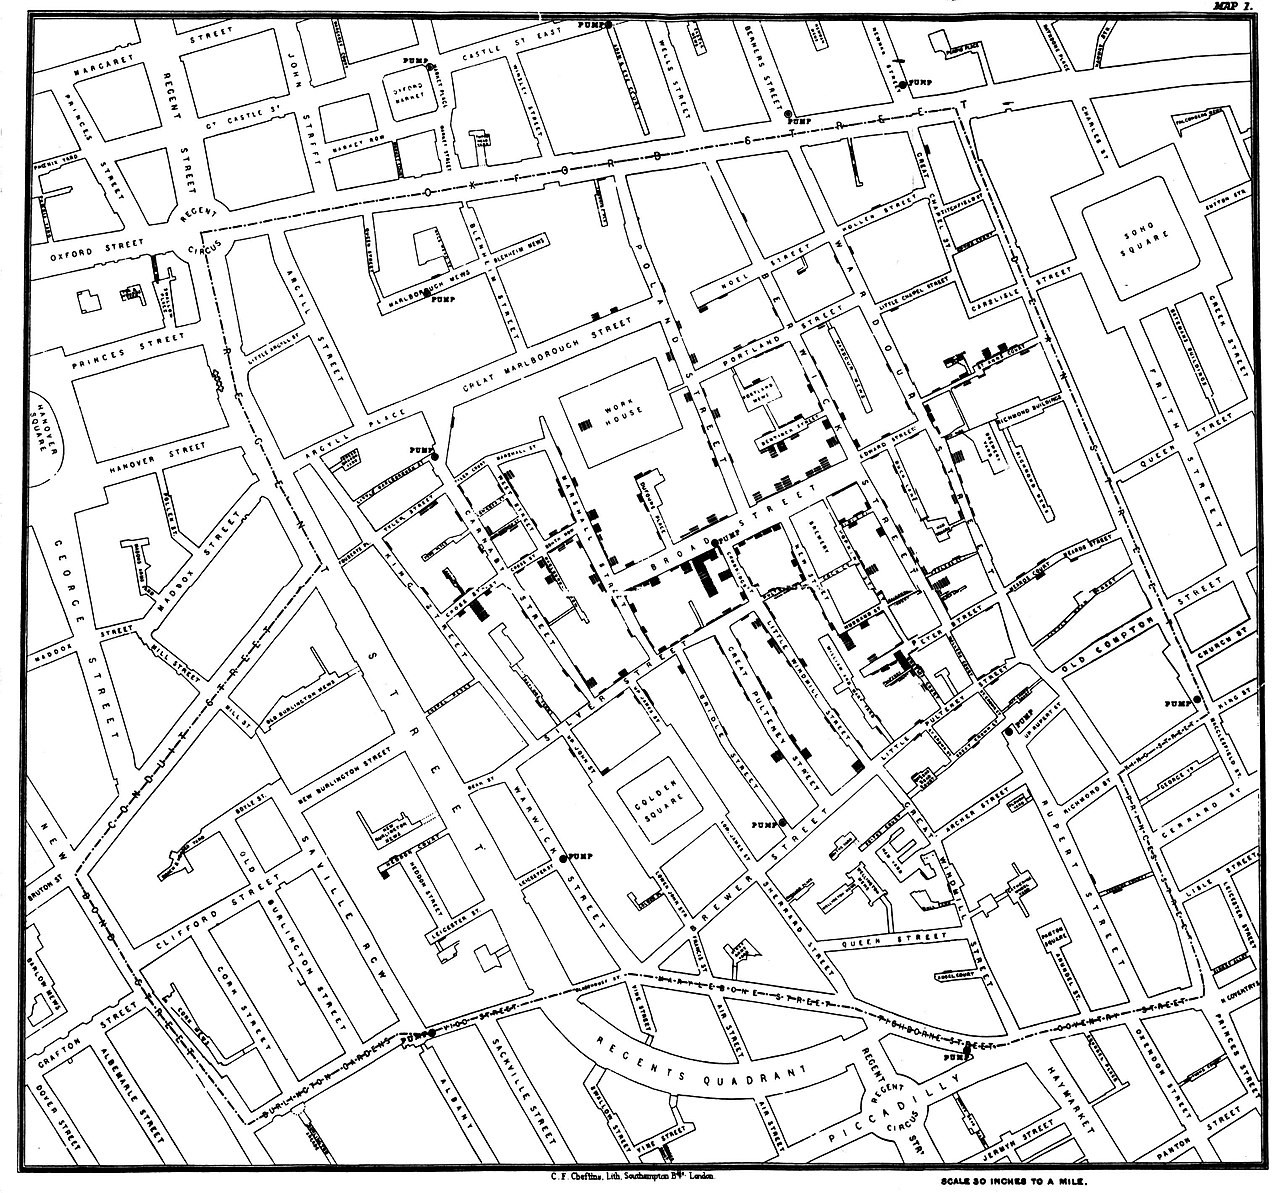 London in 19th century map using dots to show cases of cholera surrounding the Broad Street water pump.